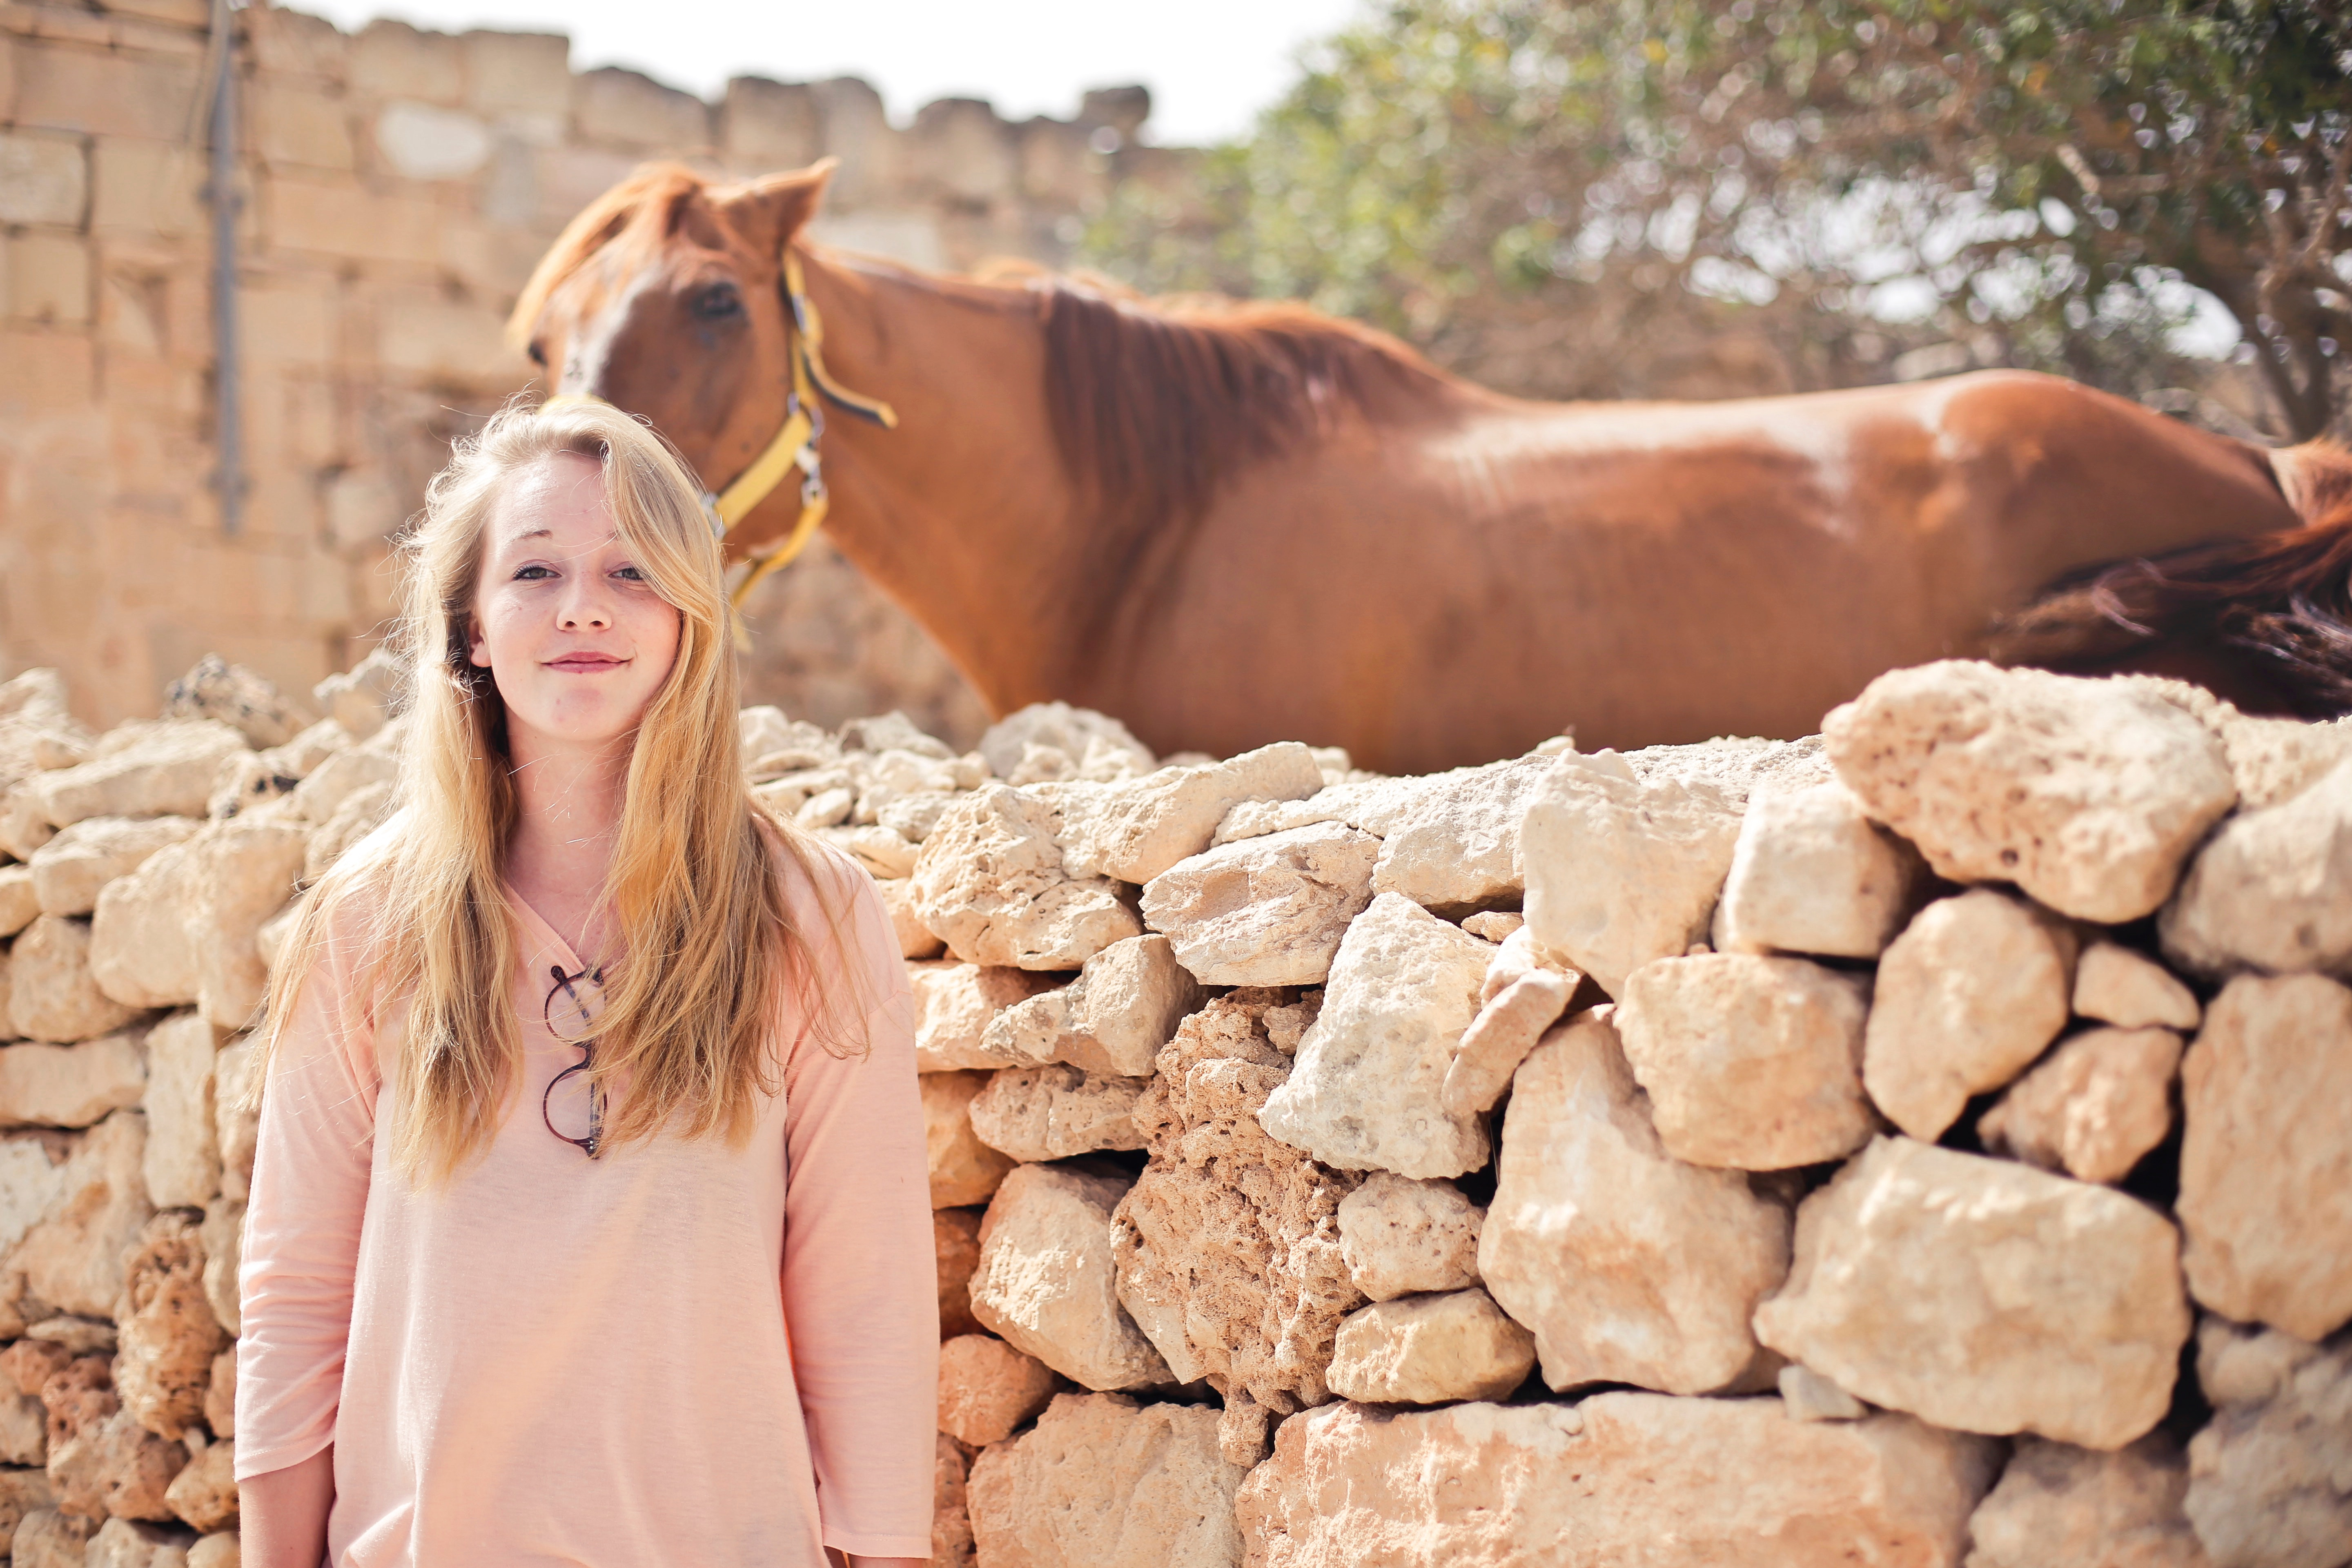 Woman wearing pink v-neck 3/4 sleeved shirt with eyeglasses standing in front of brown horse photo